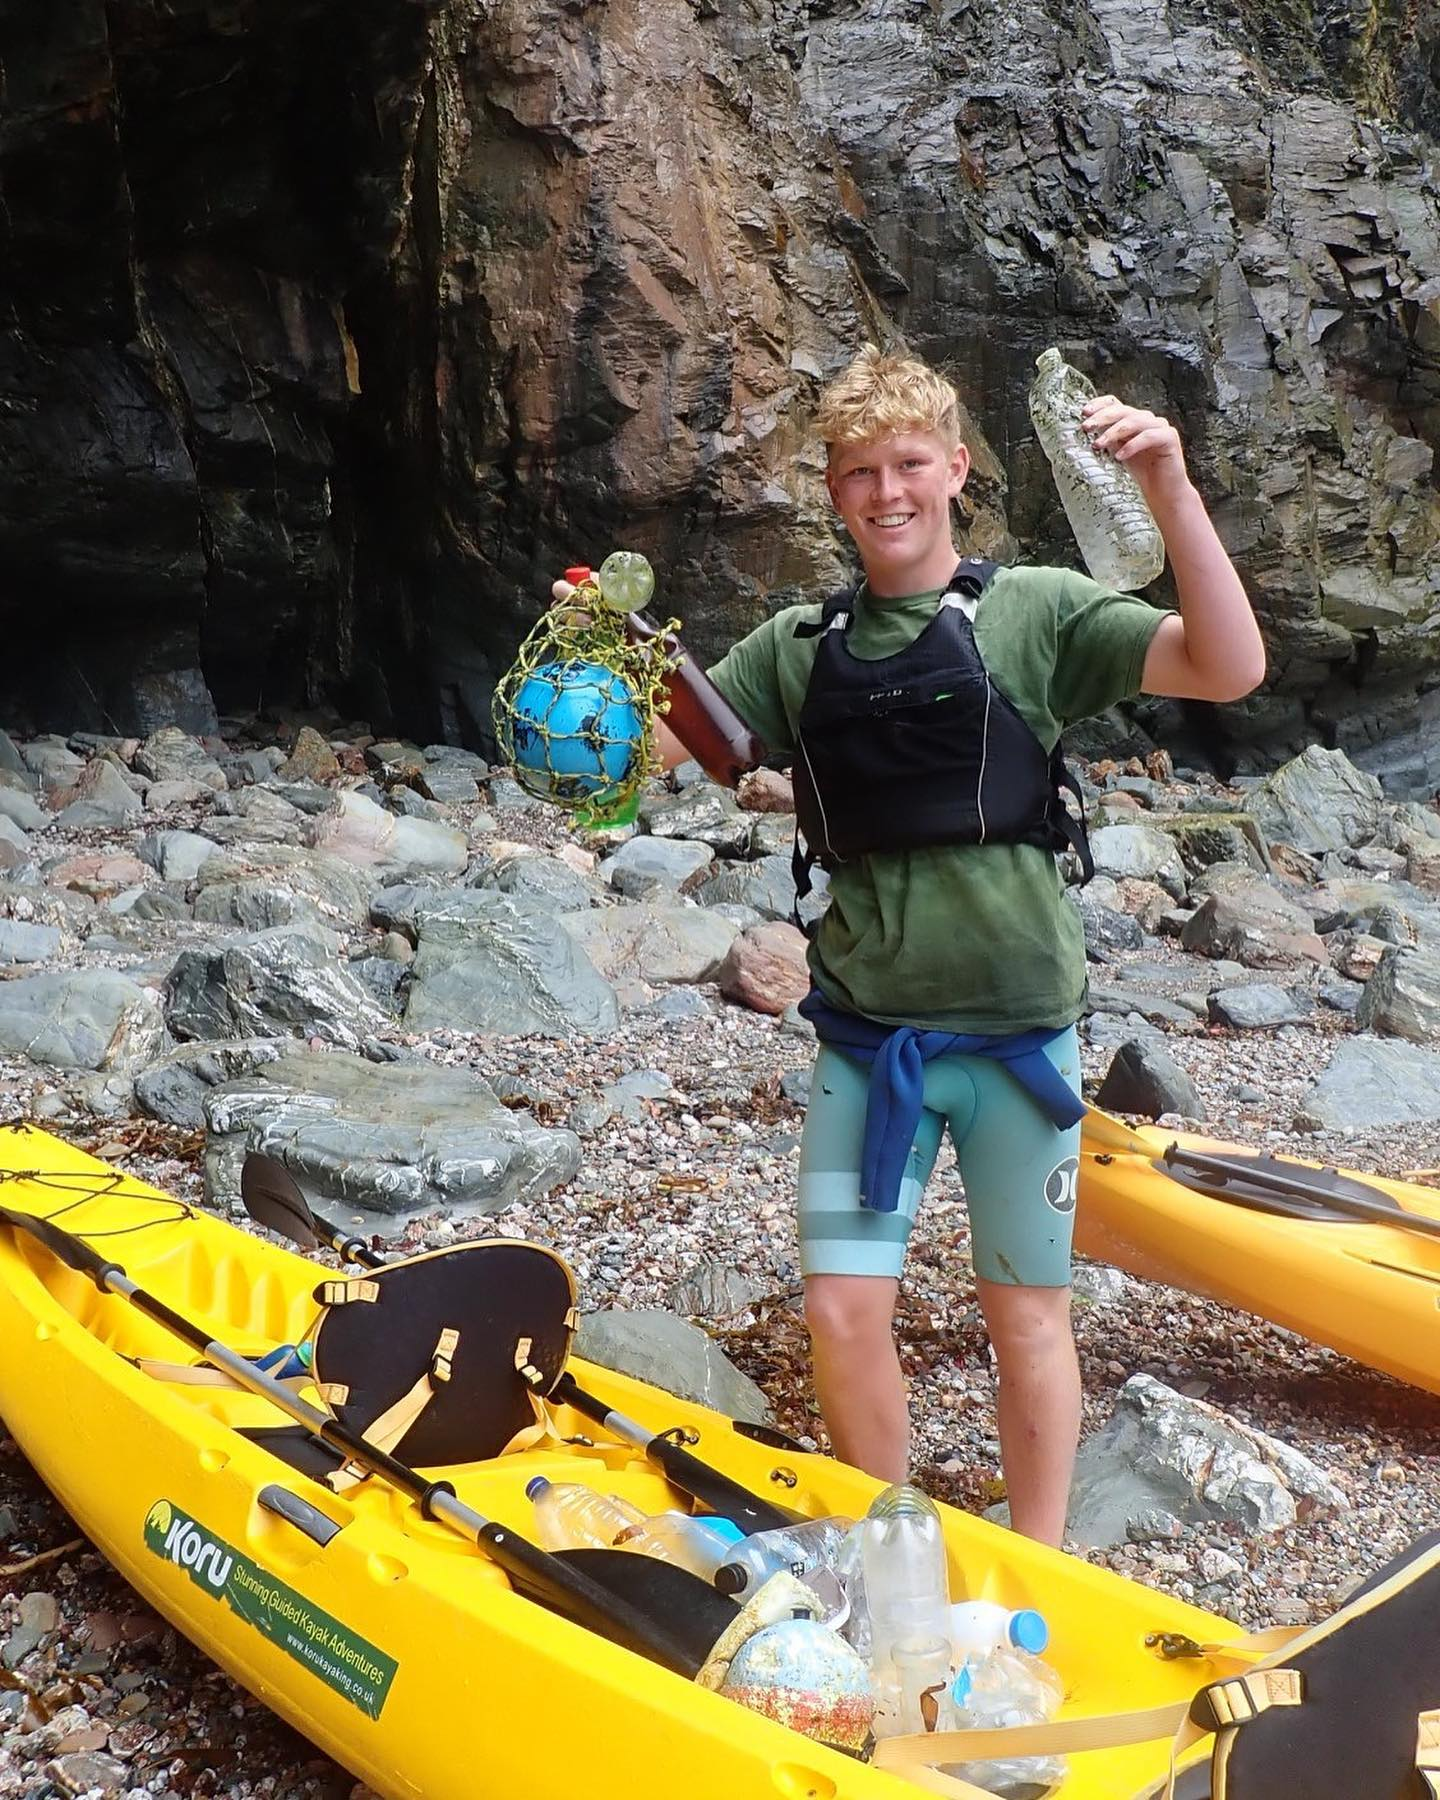 Koru do litter picking on the secret coves